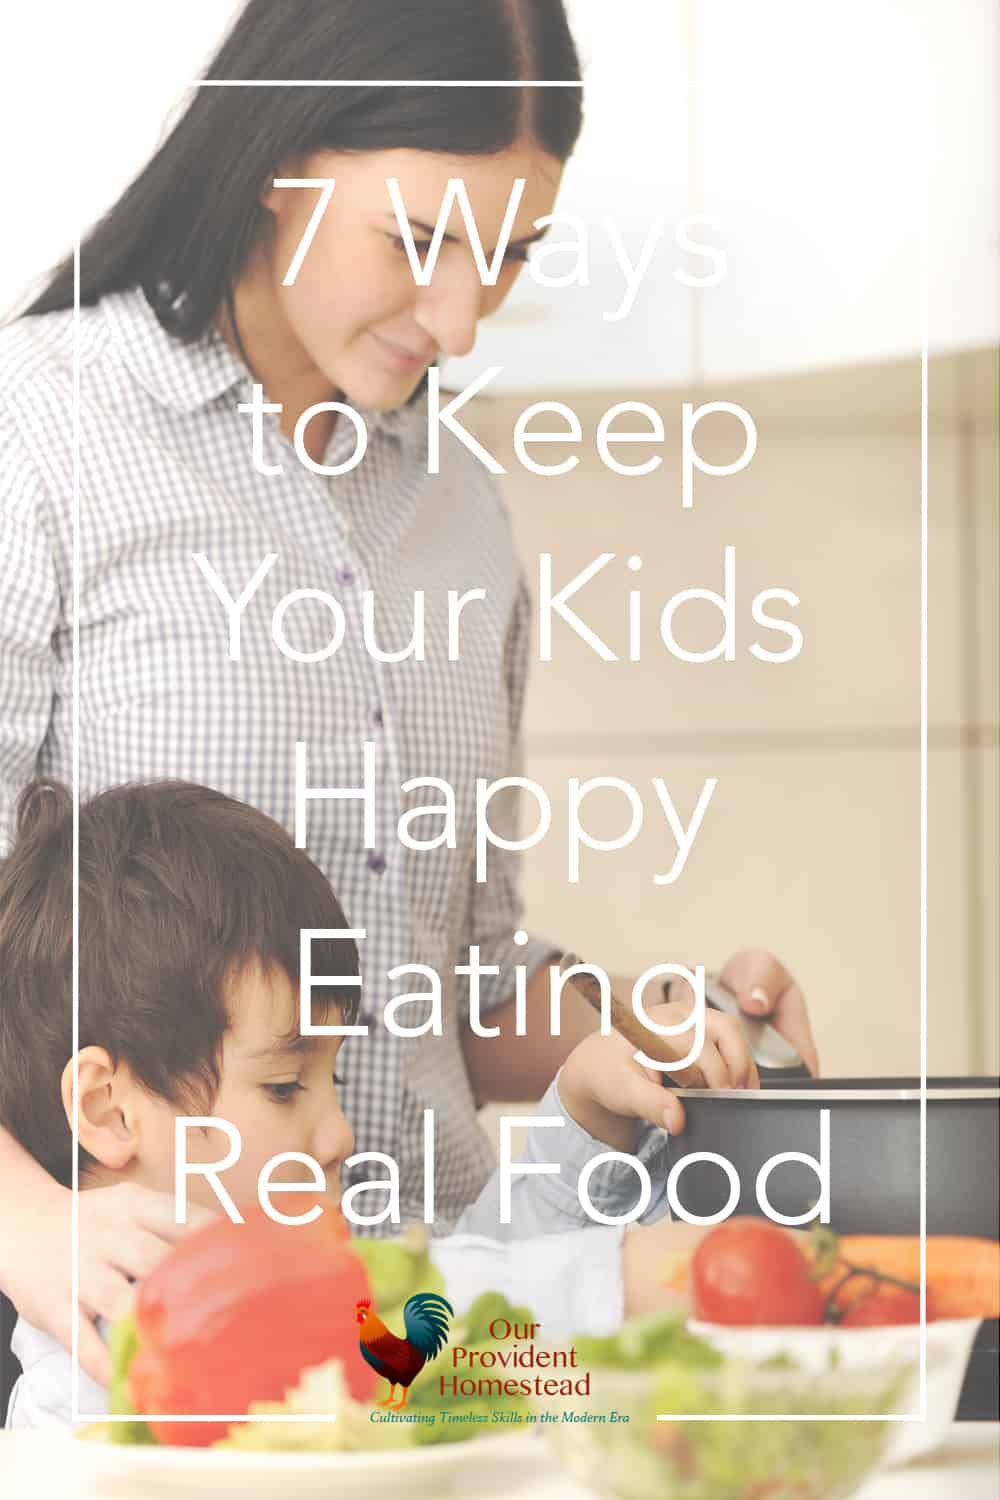 Do your kids like to eat healthy? Get our 7 ways to keep kids happy eating real food and maybe your kids will choose healthy food too. Eating Real Food | Kids Happy Eating Real Food | Real Food Tips